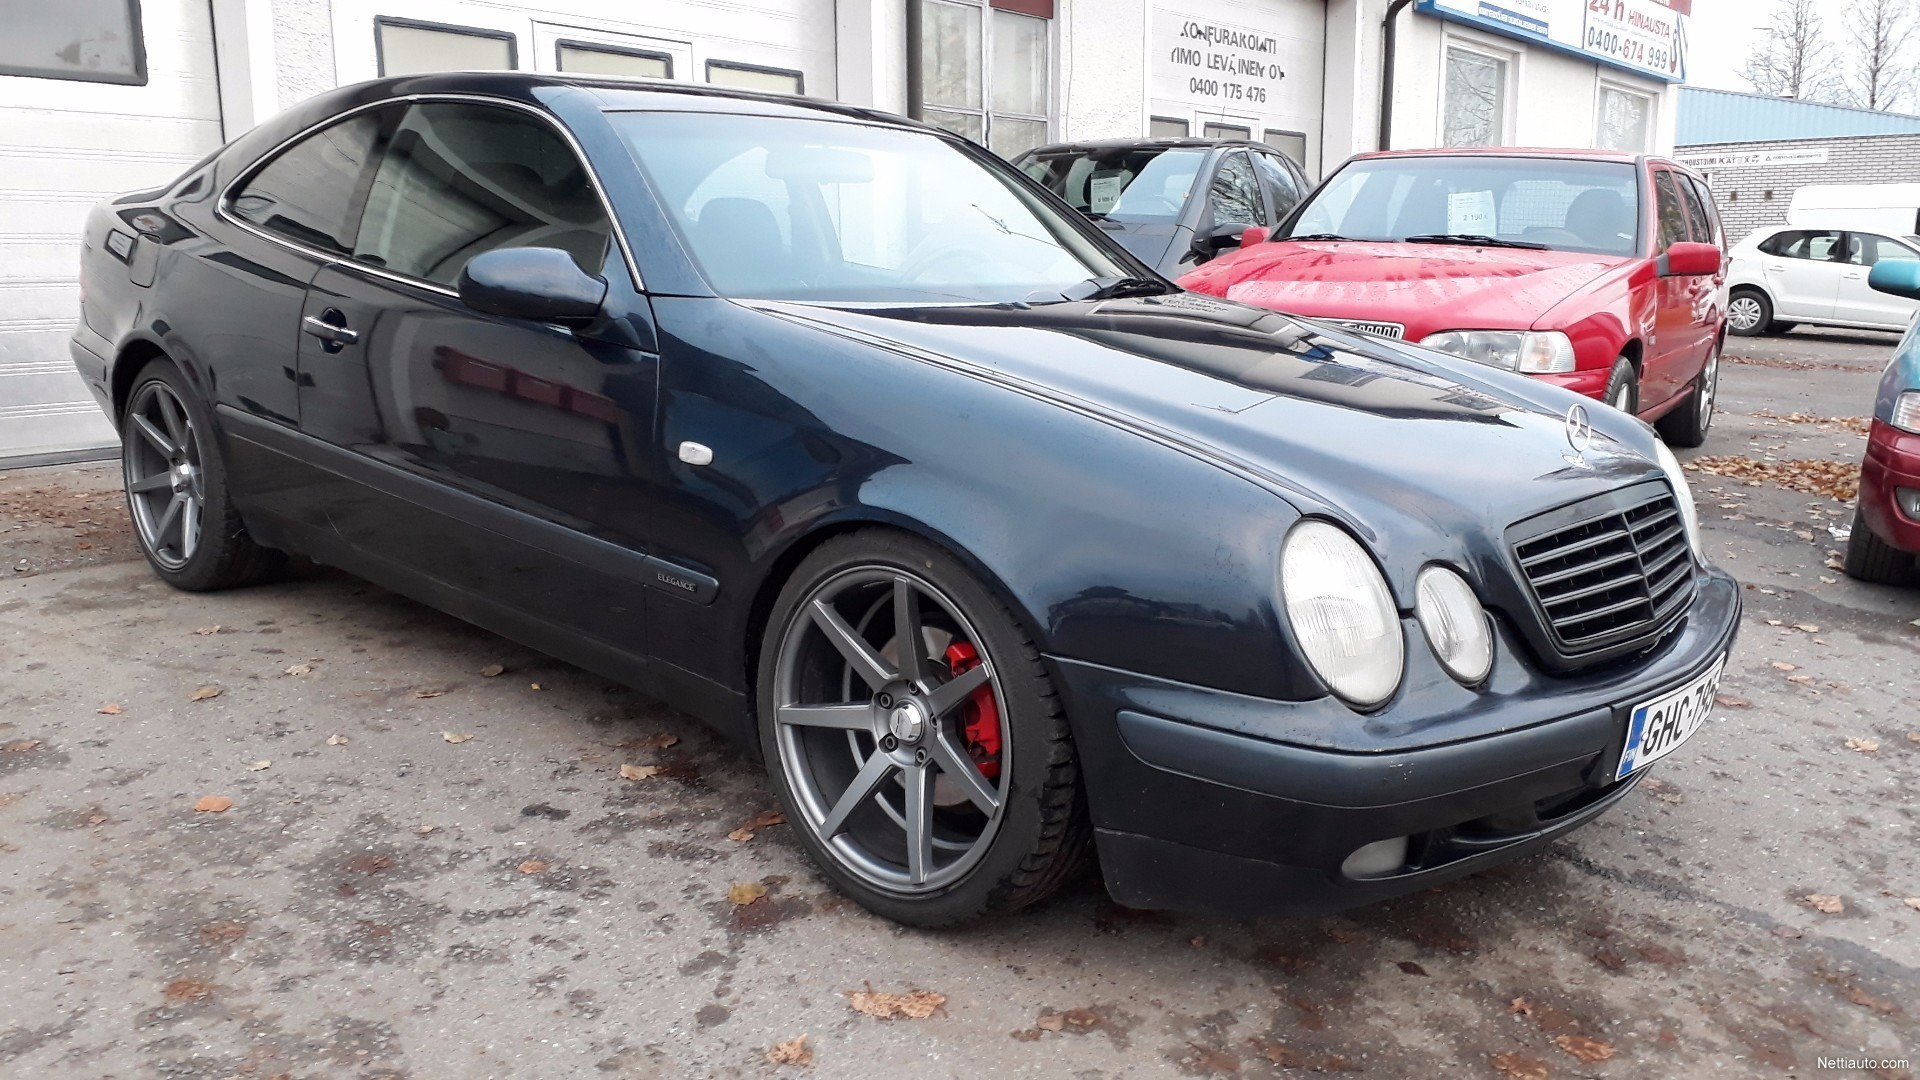 mercedes benz clk 230 kompressor 2d elegance coup 1997 used vehicle nettiauto. Black Bedroom Furniture Sets. Home Design Ideas